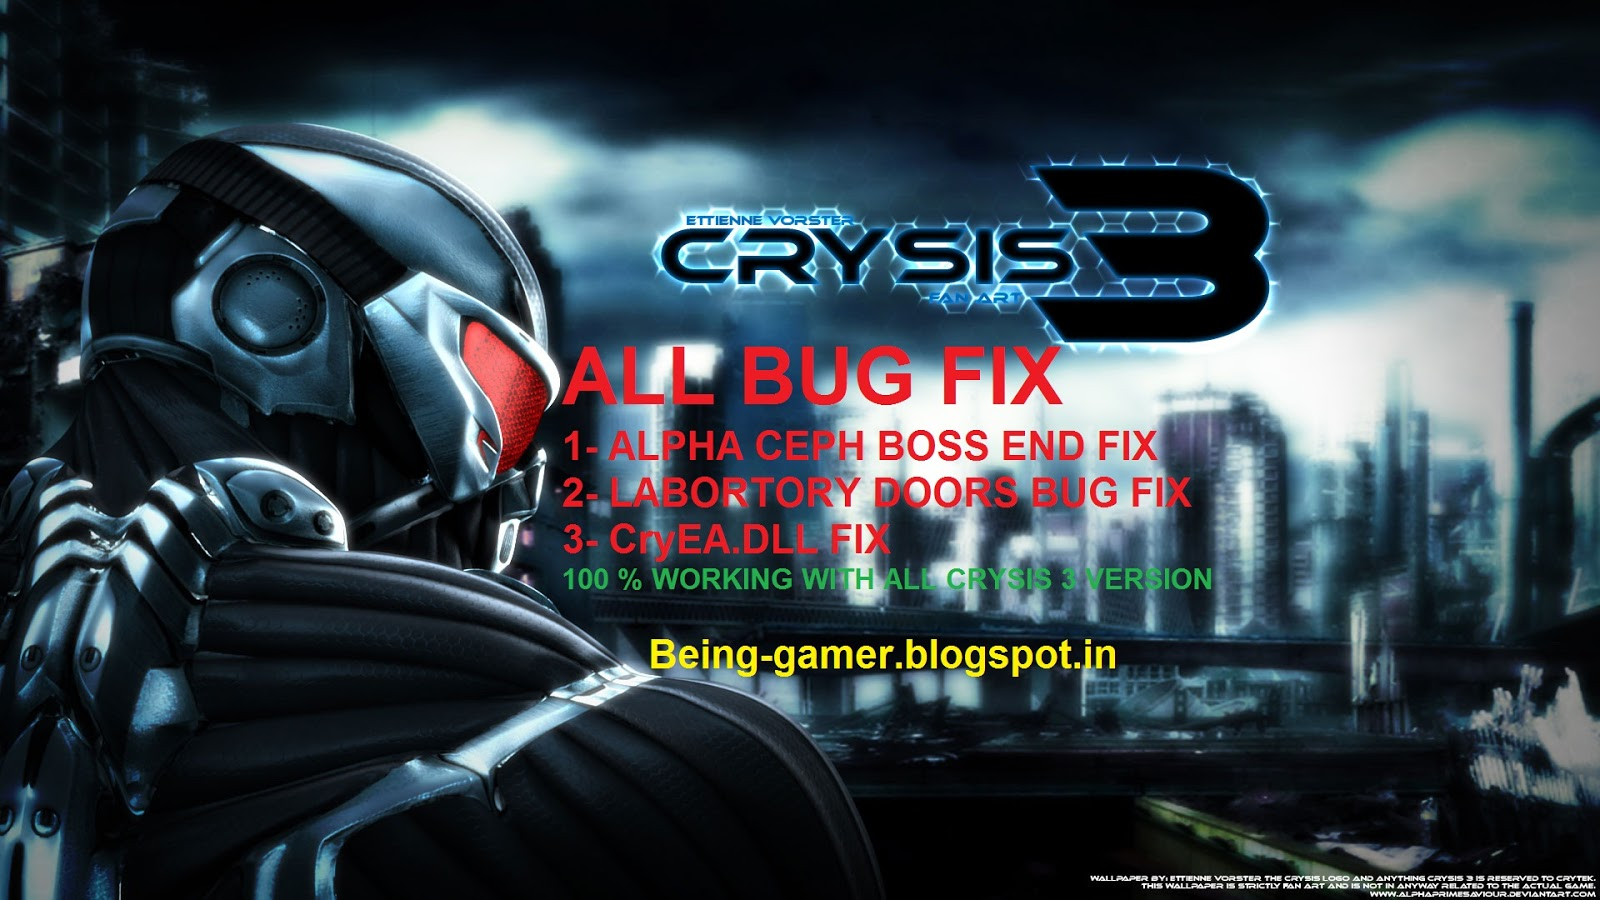 MY ROCKING WORLD: HOW TO DEFEAT ALPHA CEPH IN CRYSIS 3 ...